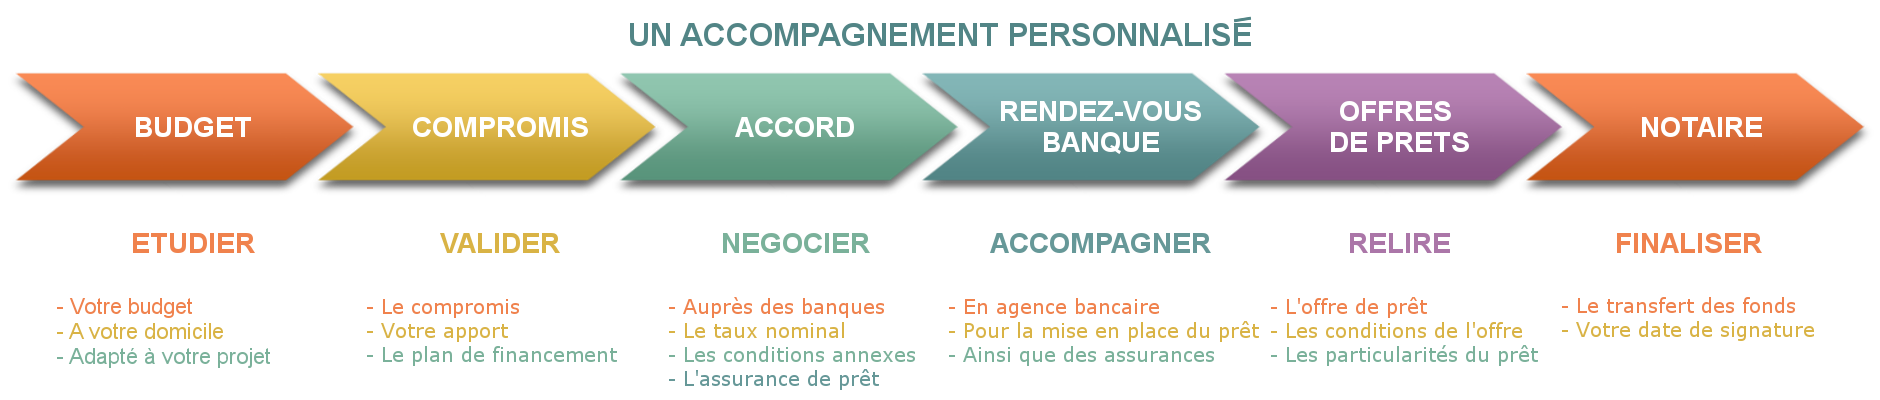 Accompagnement Logifinances : courtiers immobiliers - prêt immobilier